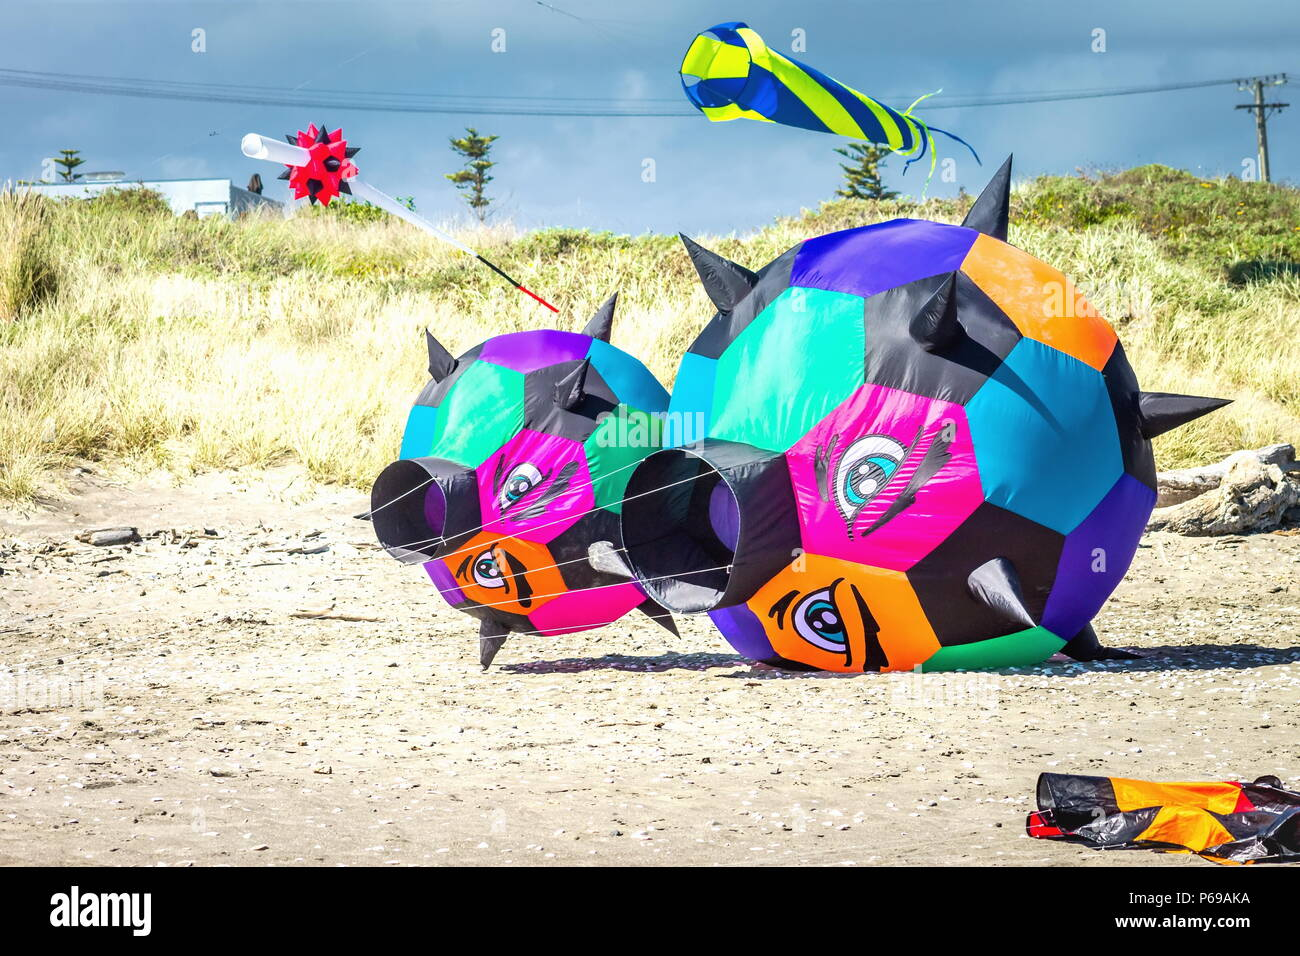 Otaki, New Zealand - March 3 2016: Brightly colored kites on the Beach are part of the annual Otaki Kite Flying Festival held each year in summer. Stock Photo